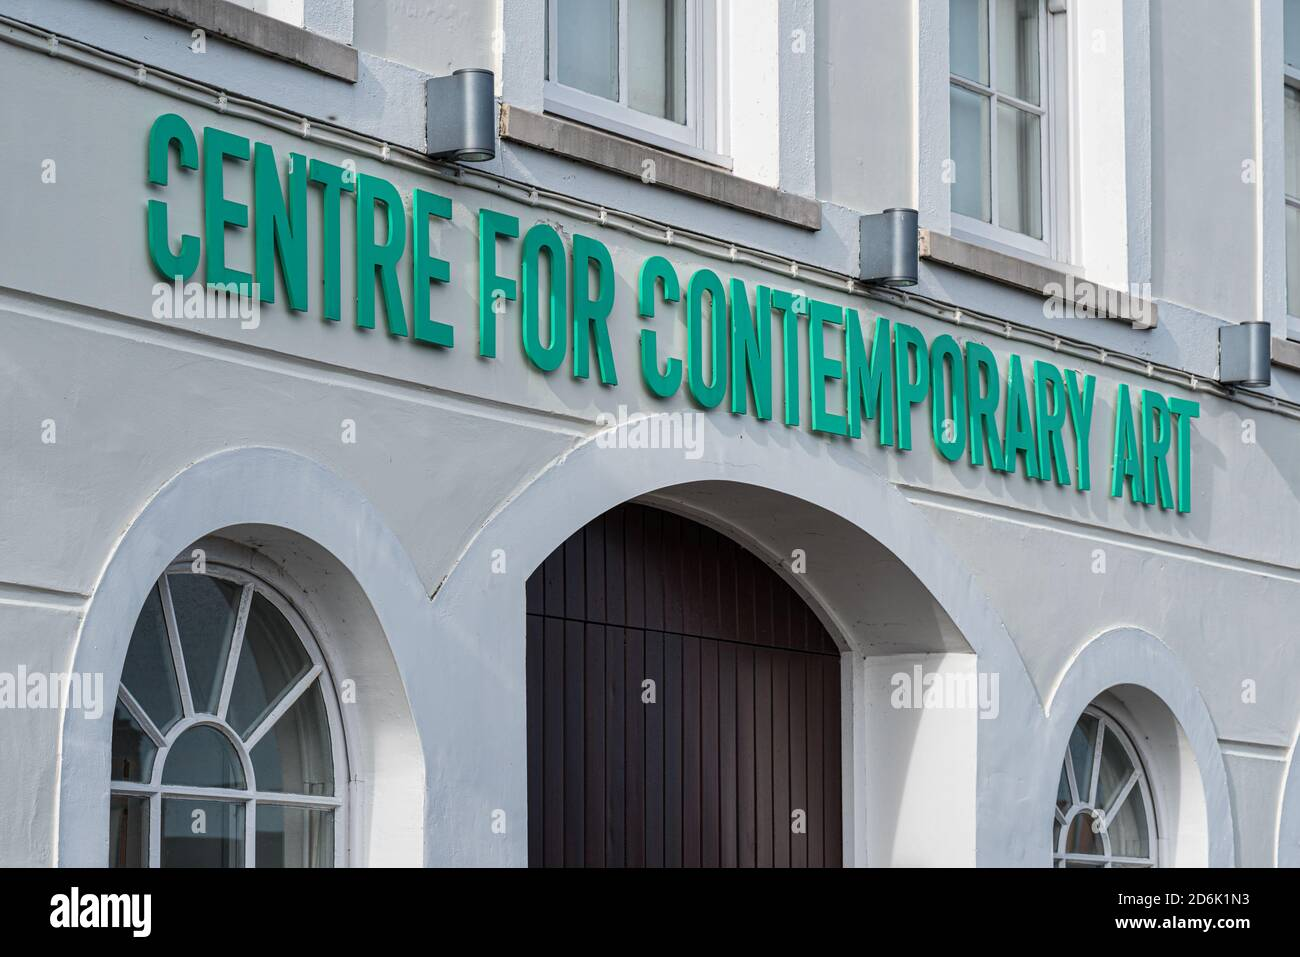 Derry, Northern Ireland- Sept 27, 2020: The sign for Centre for Contemporary Art or CCA in Derry. Stock Photo